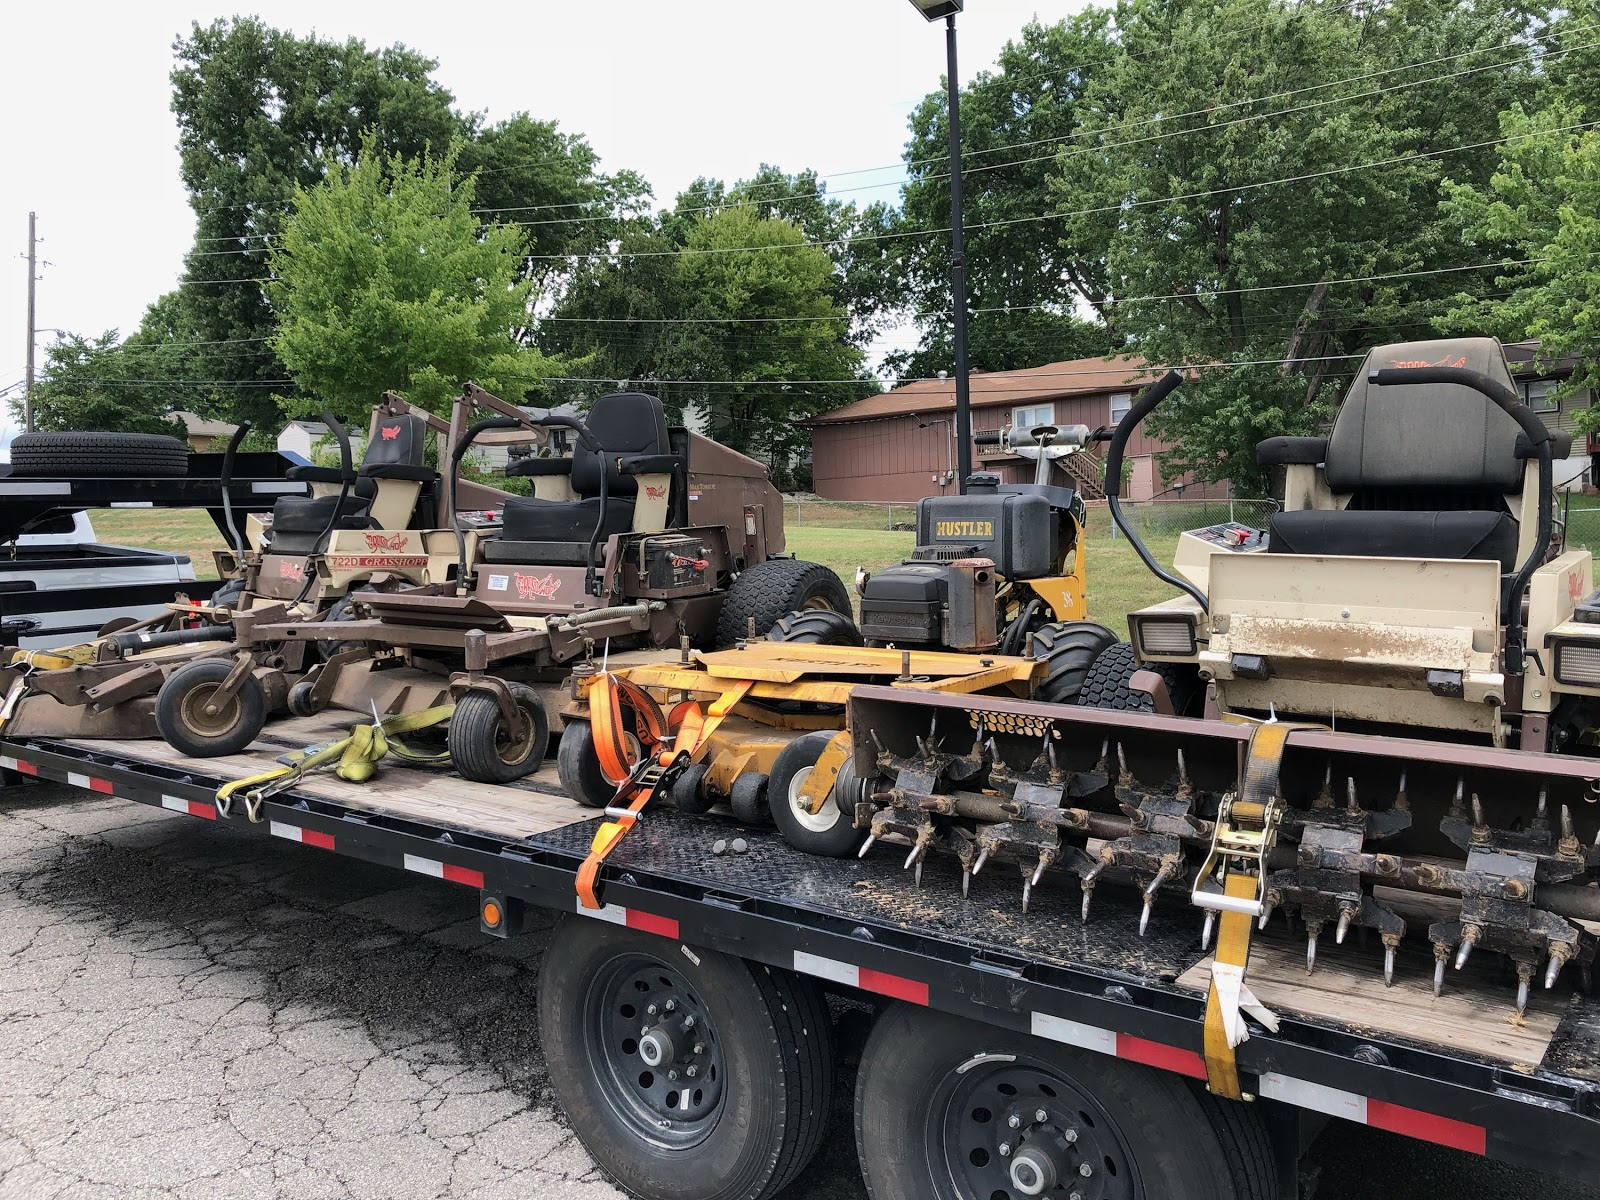 four zero turn riding lawn mowers being transported